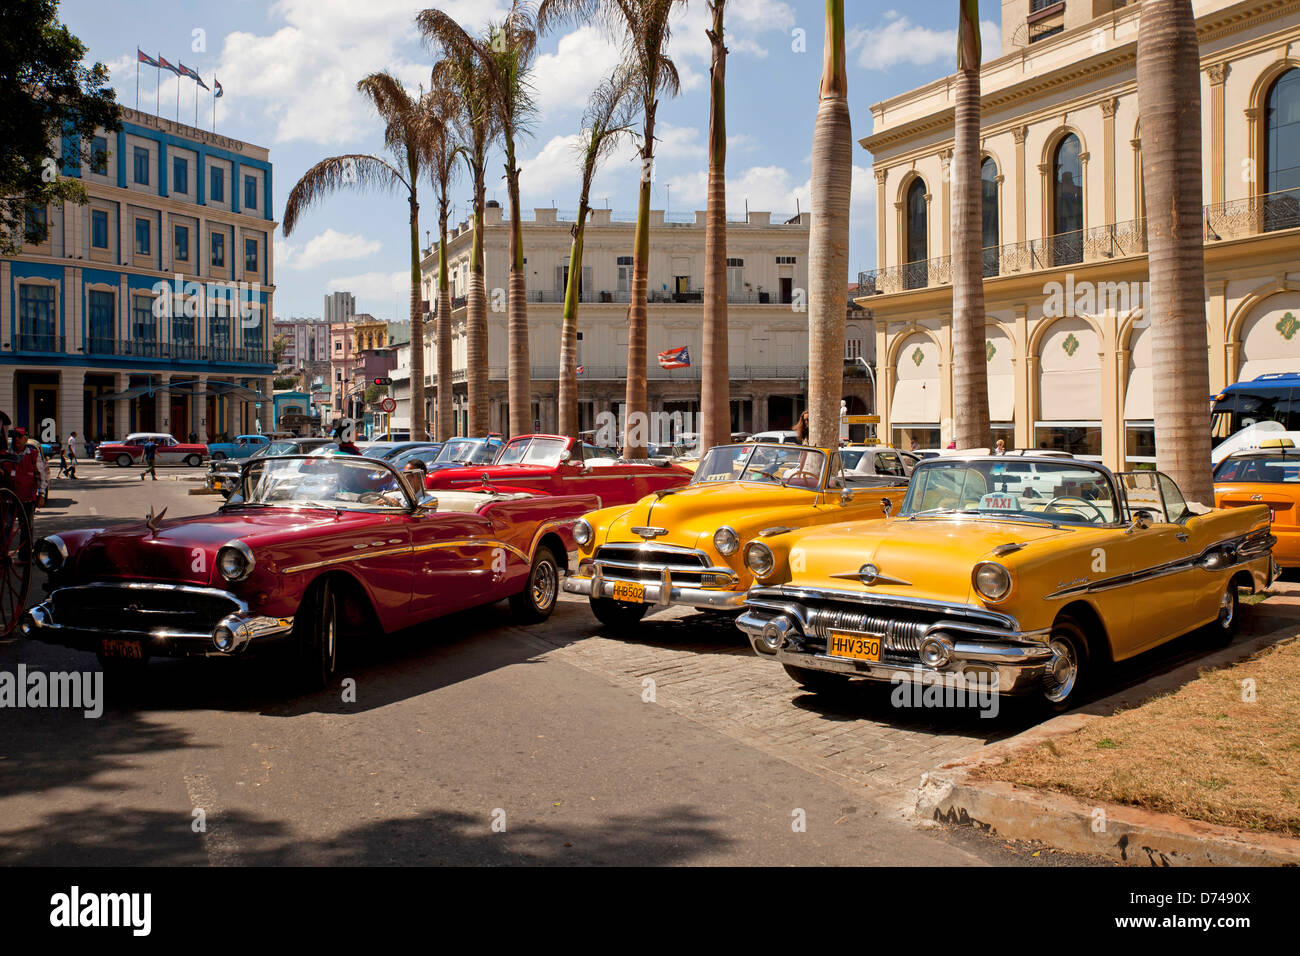 50s Cars Stock Photos & 50s Cars Stock Images - Alamy